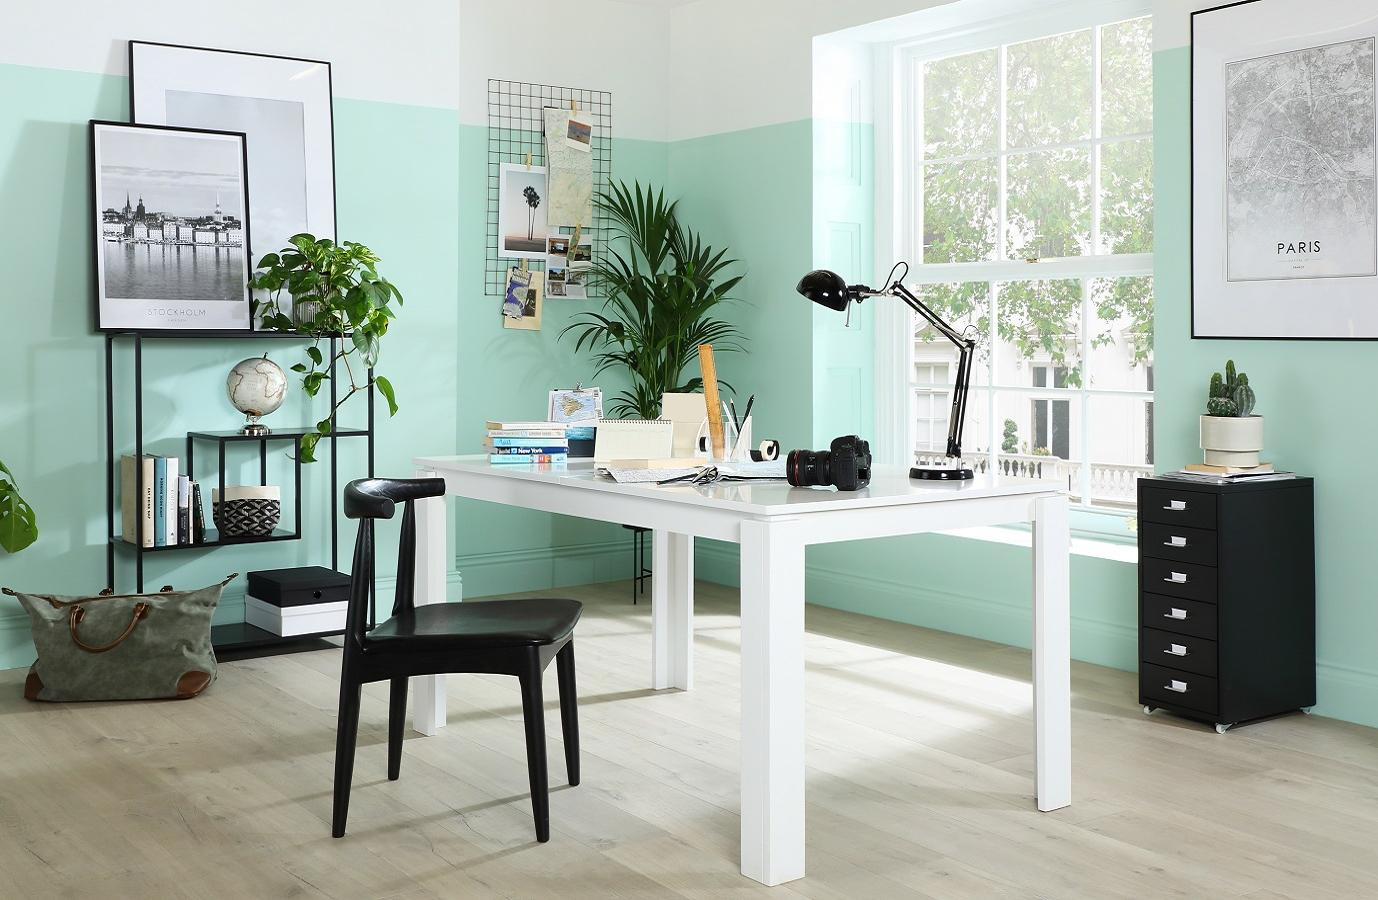 Home office space with white desk and chair